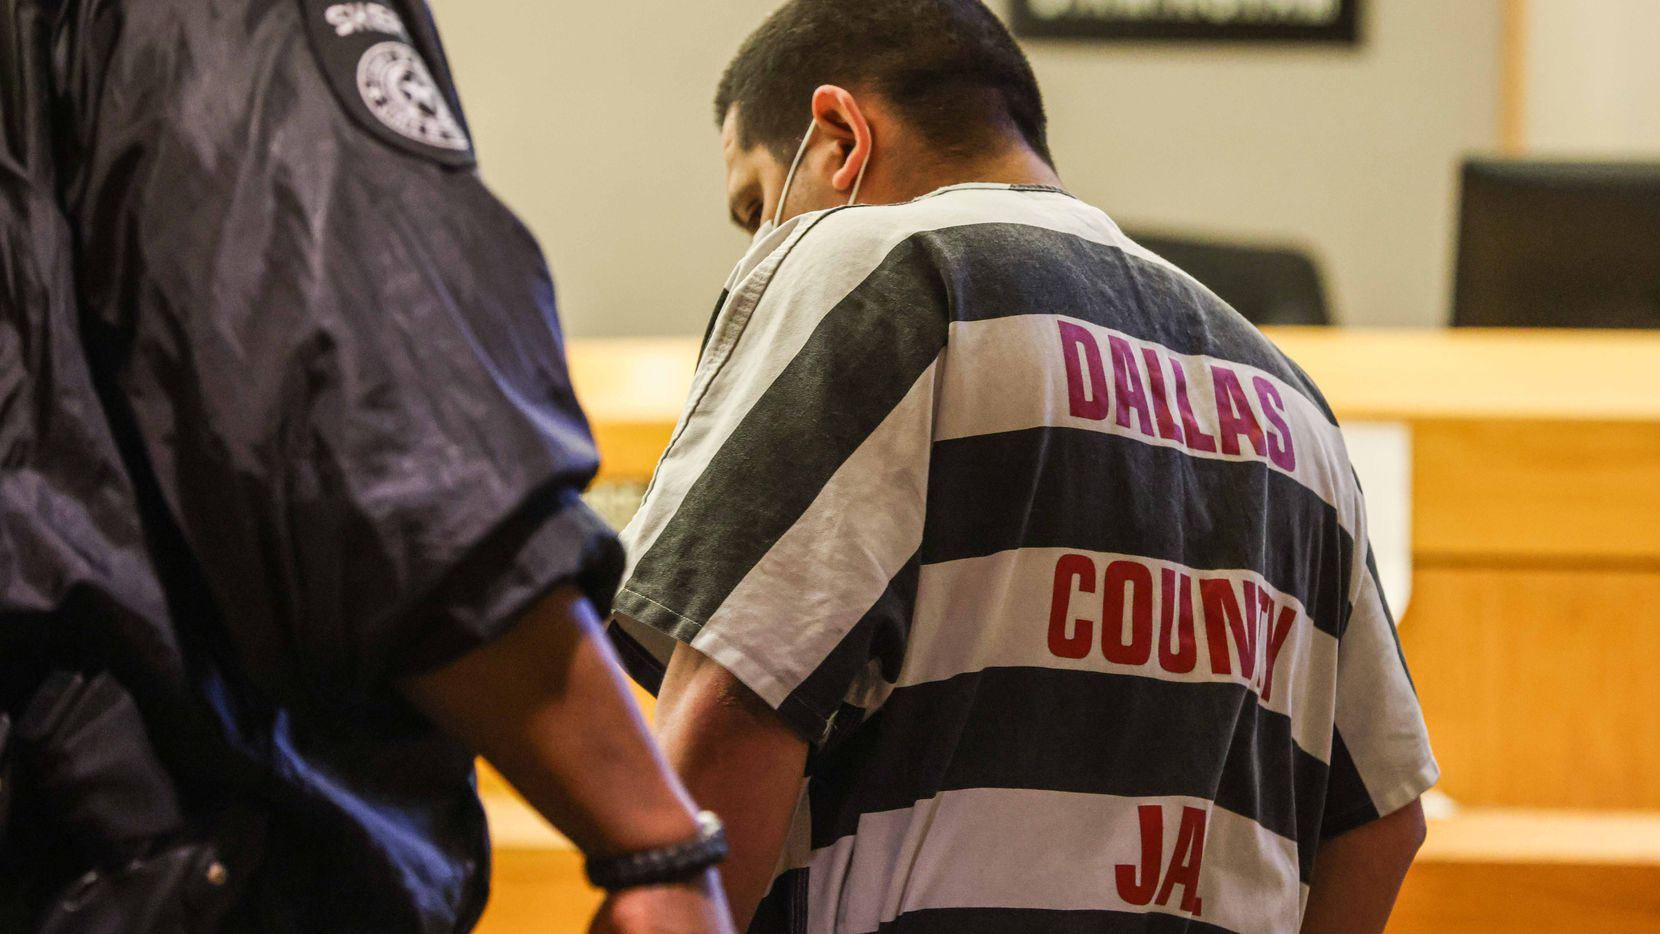 Armando Juarez enters the court Friday, Jan. 15, 2021, to plead guilty in the slaying of Dallas police Officer Rogelio Santander.